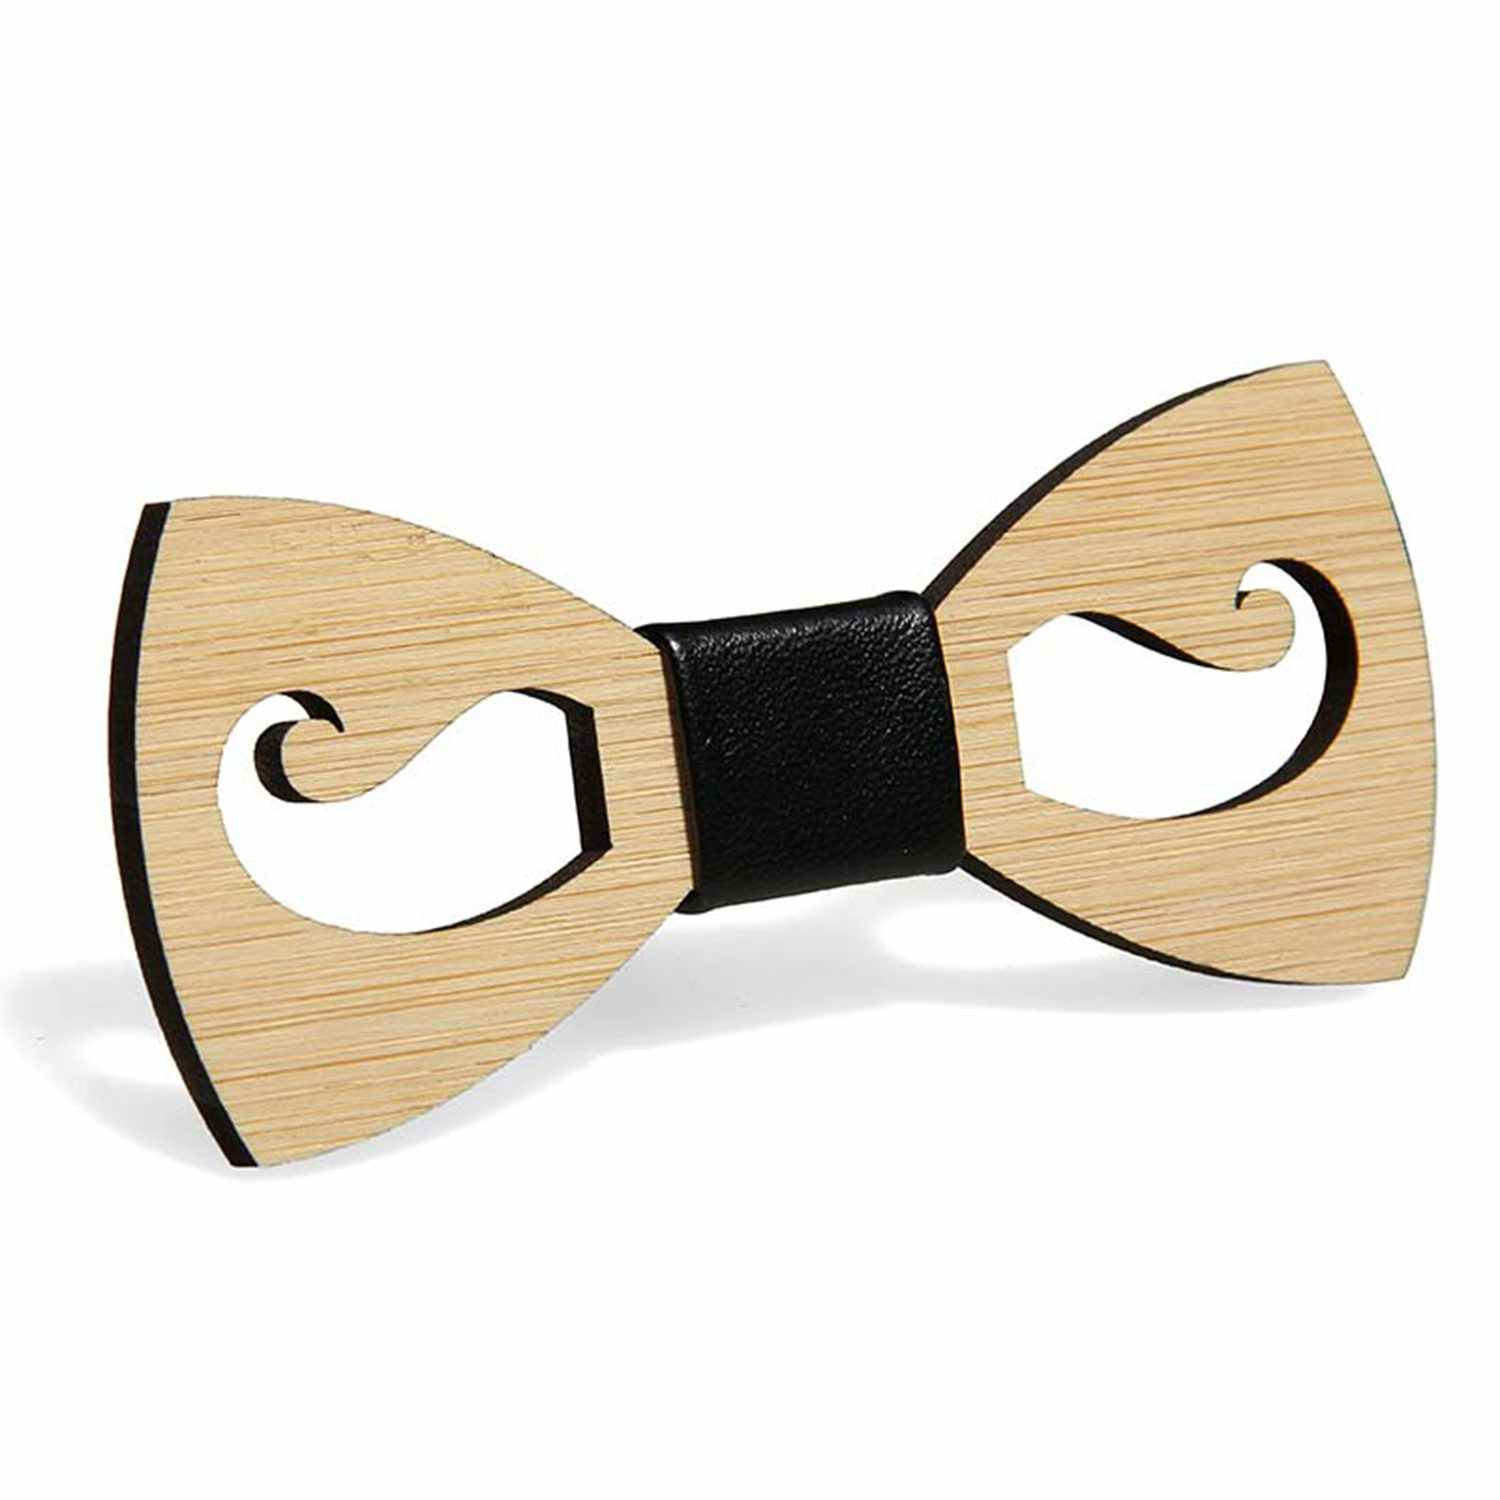 431c63a4ea17 Mens Wooden Bow Tie Accessory Wedding Party Christmas Gifts Bamboo Wood  Bowtie Neck Wear for Men